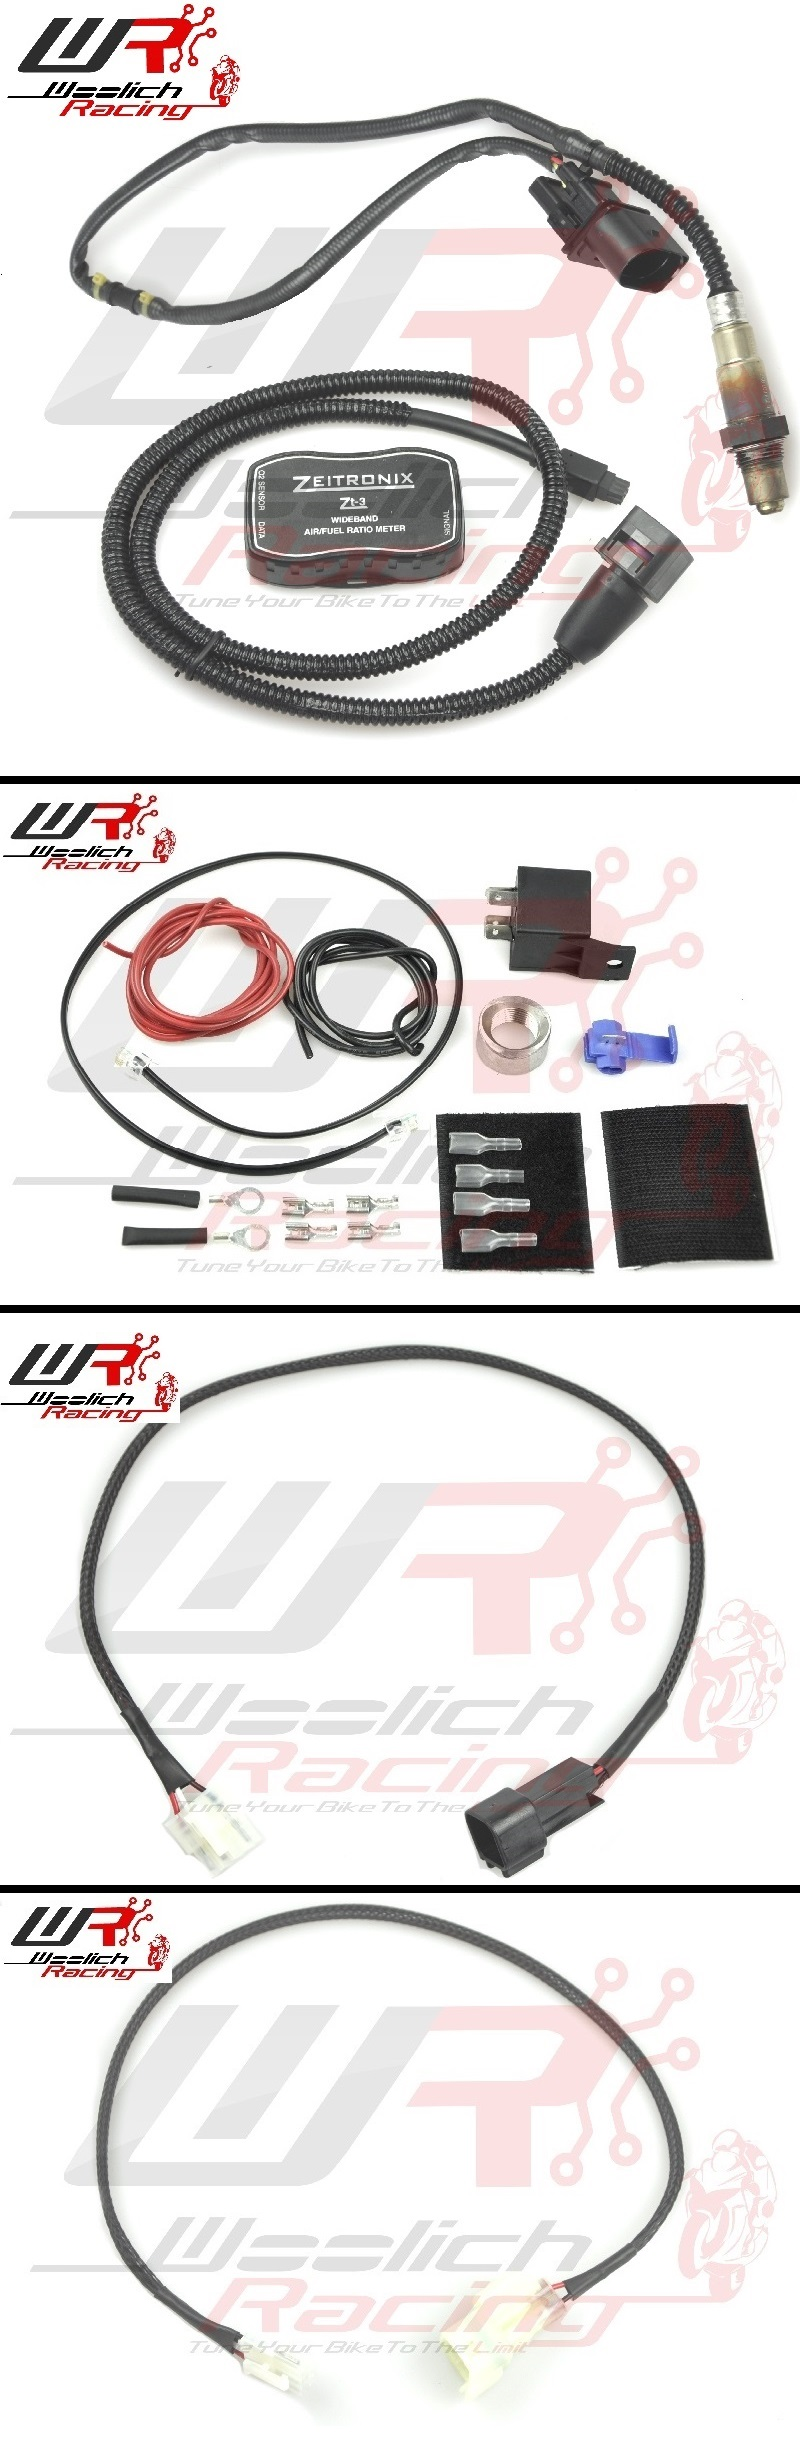 2012-2016 Kawasaki ER-6n Log Box (Denso) v3 + Zeitronix ZT-3 Wideband O2 Package